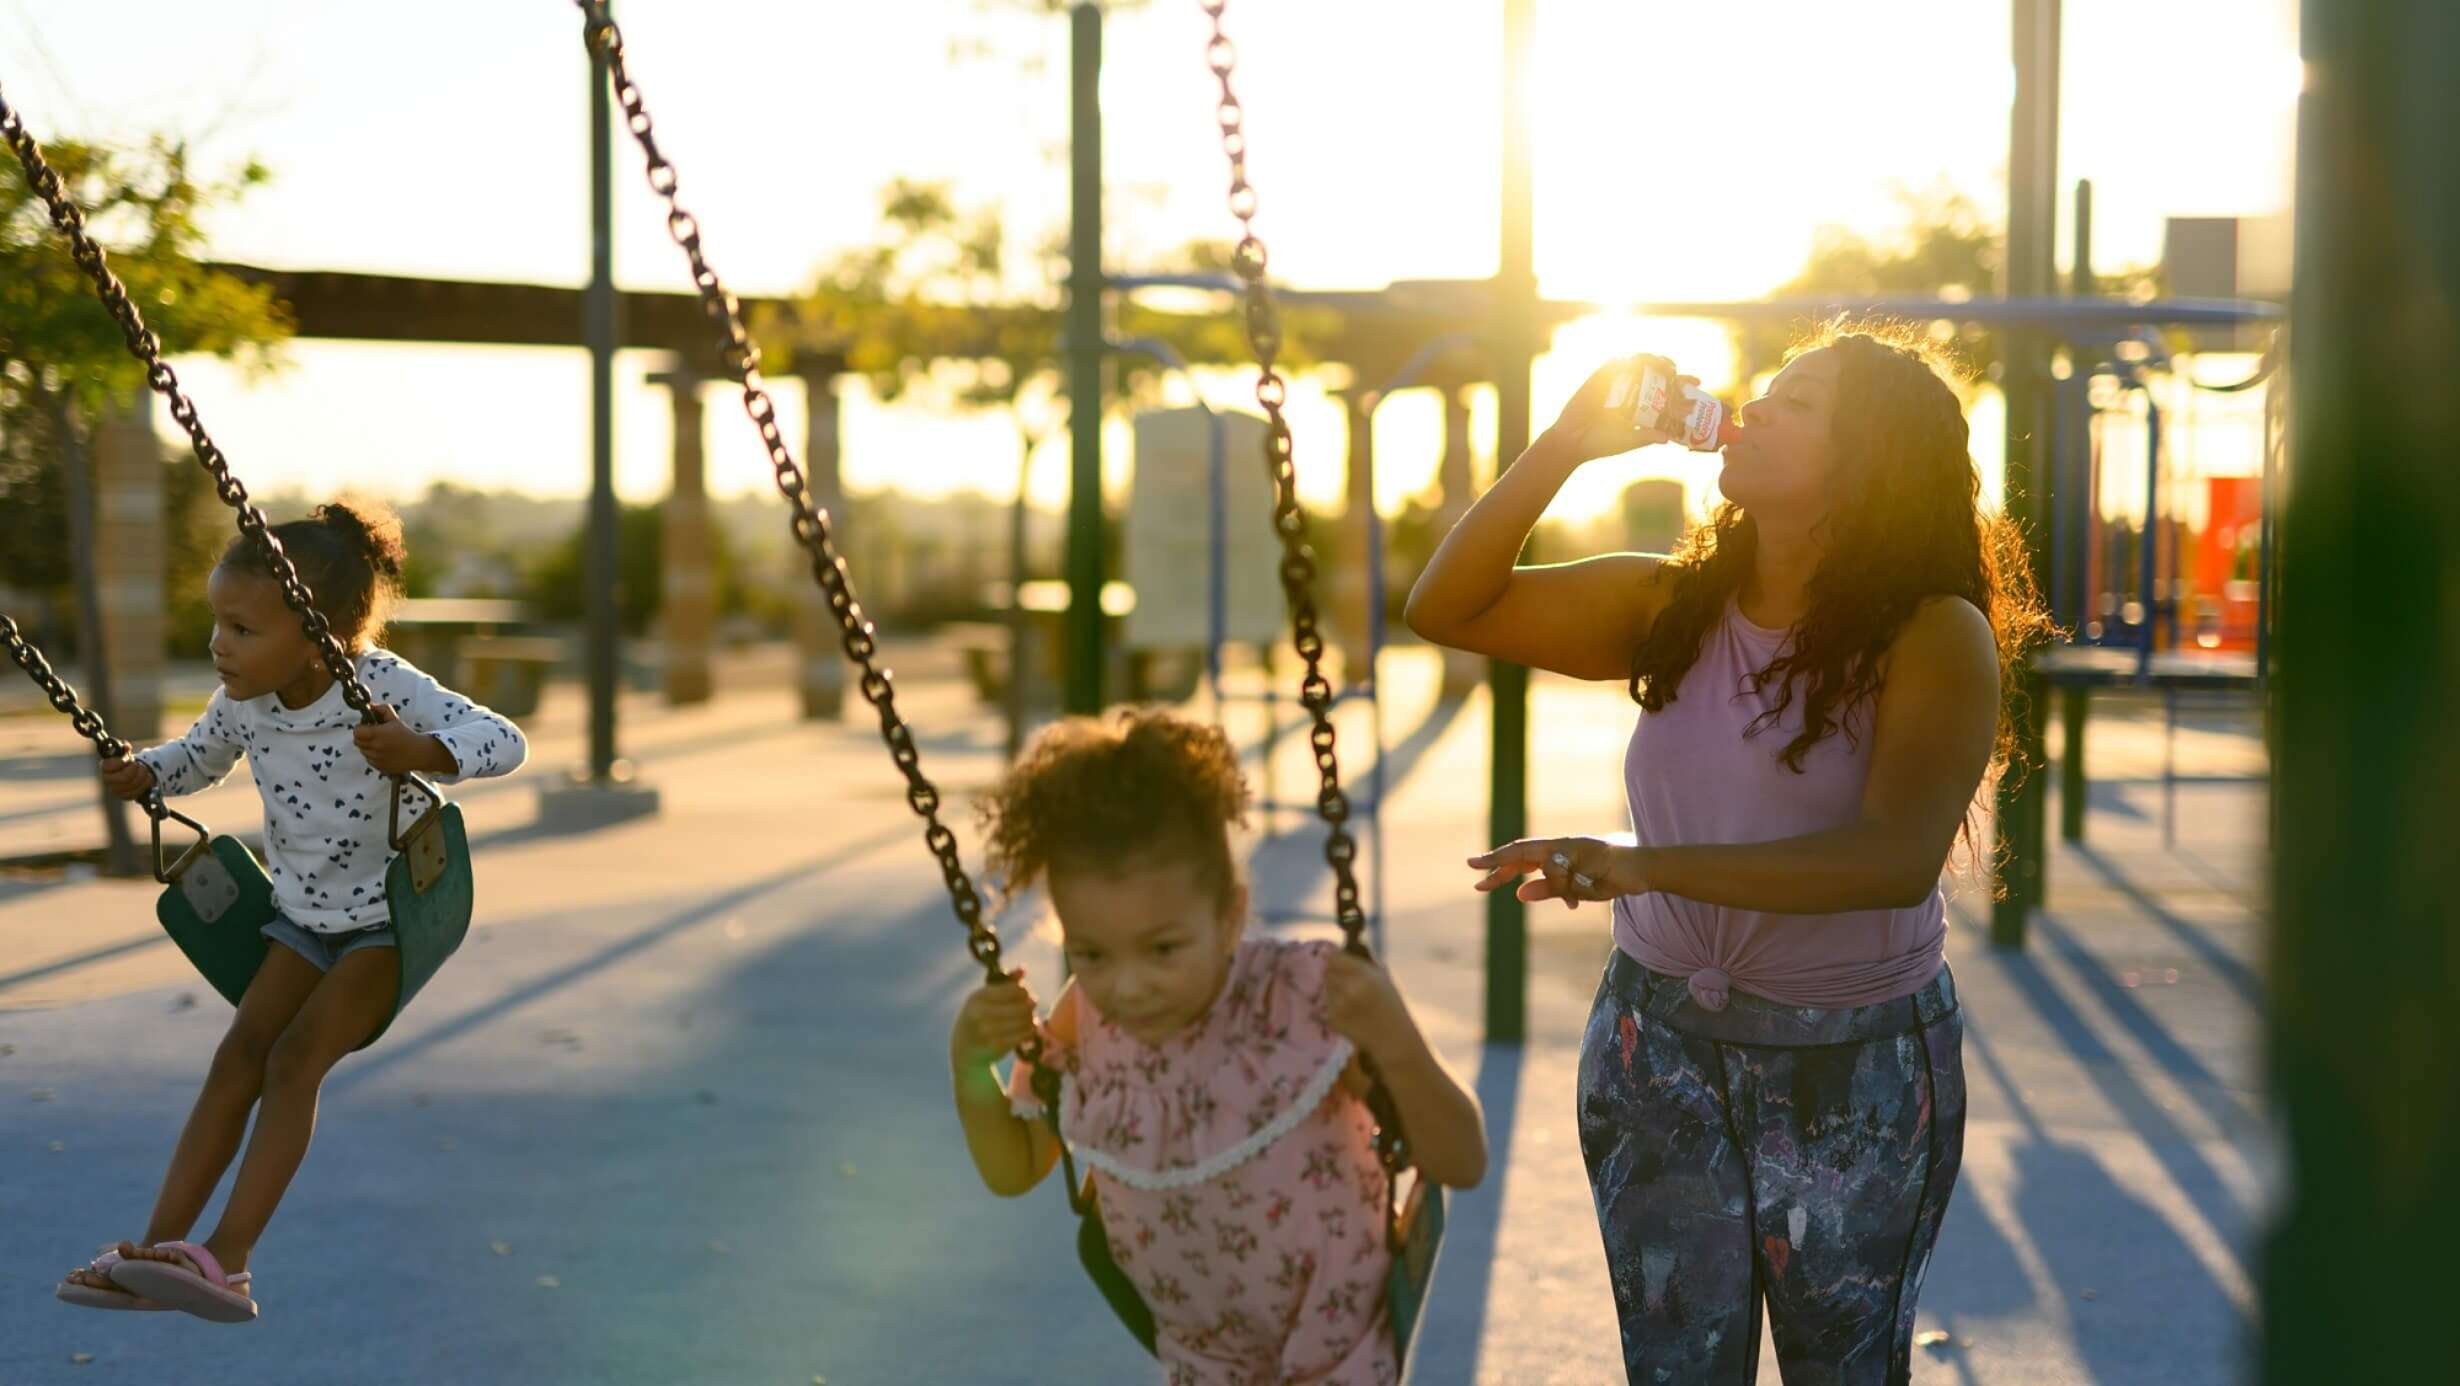 Charmaine enjoying a Chocolate Premier Protein Shake at a playground with her children.